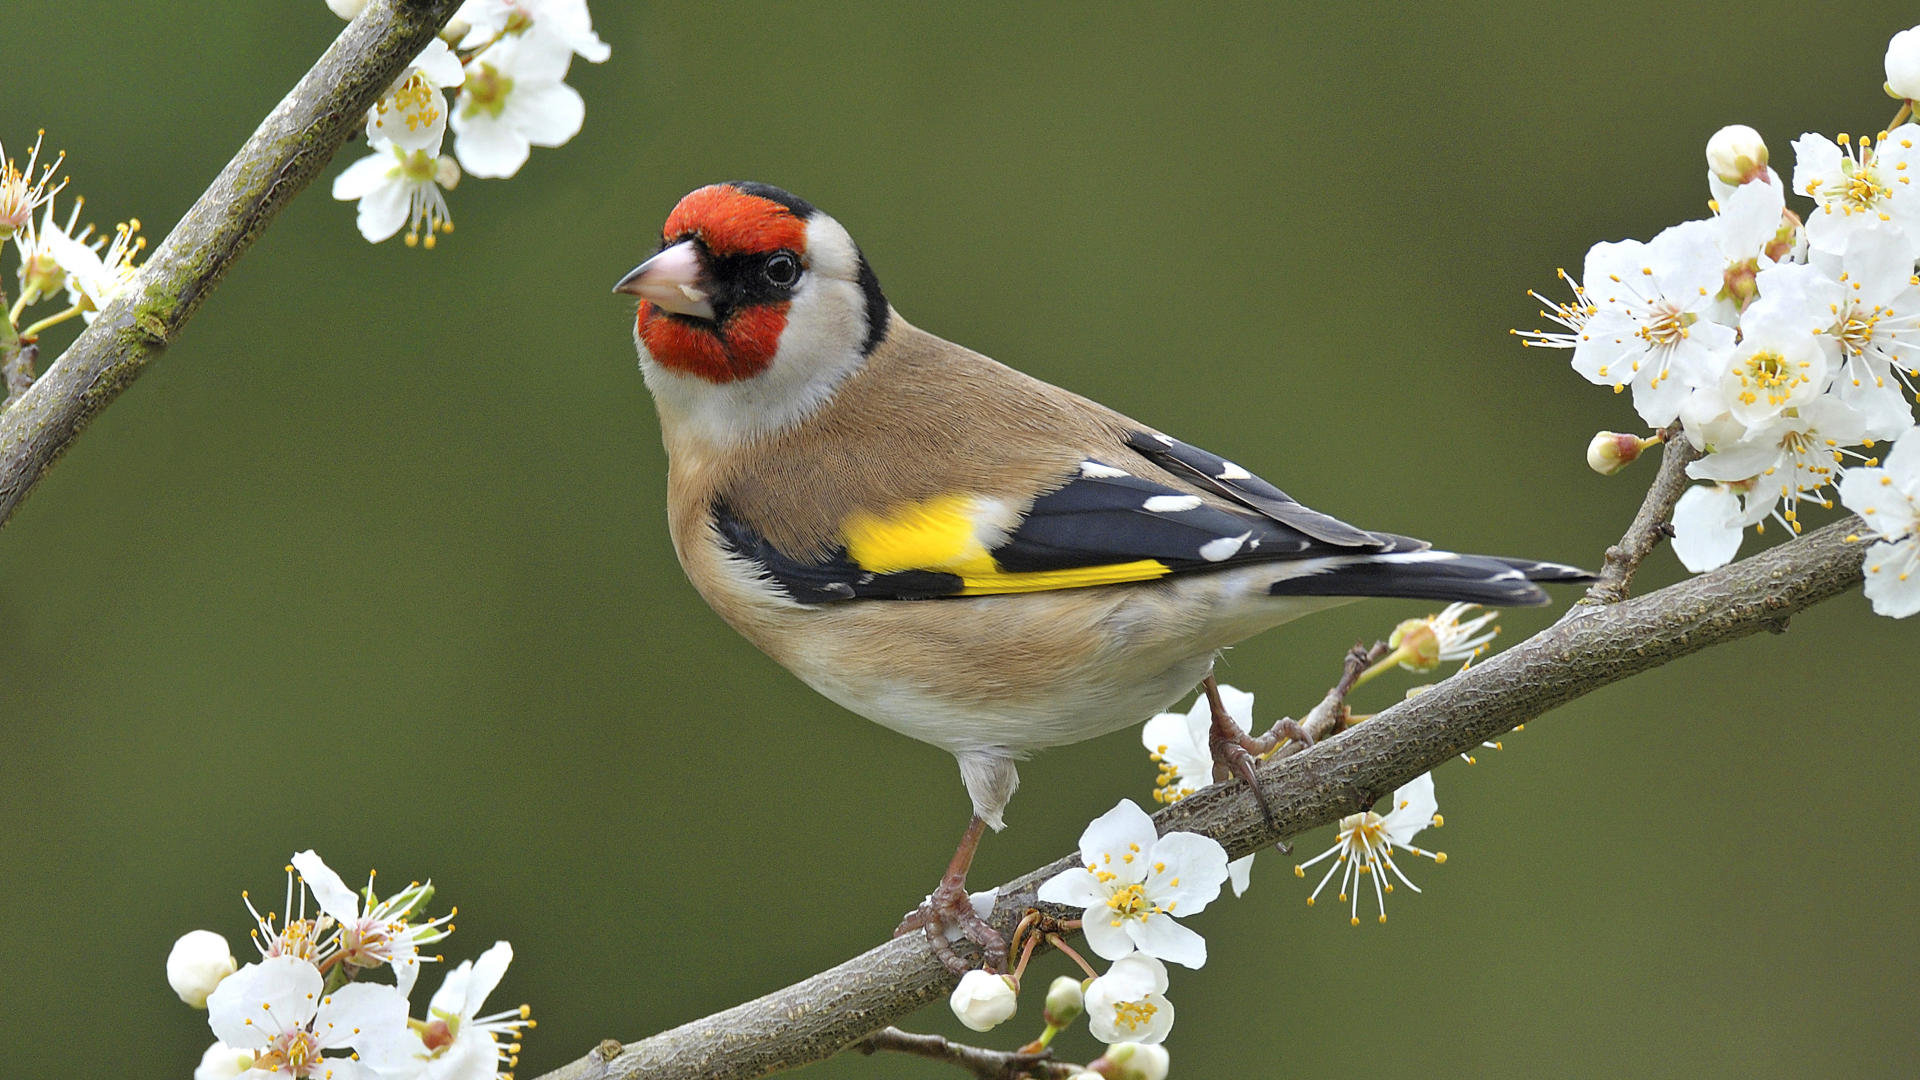 goldfinch full hd wallpaper and background image | 1920x1080 | id:180251